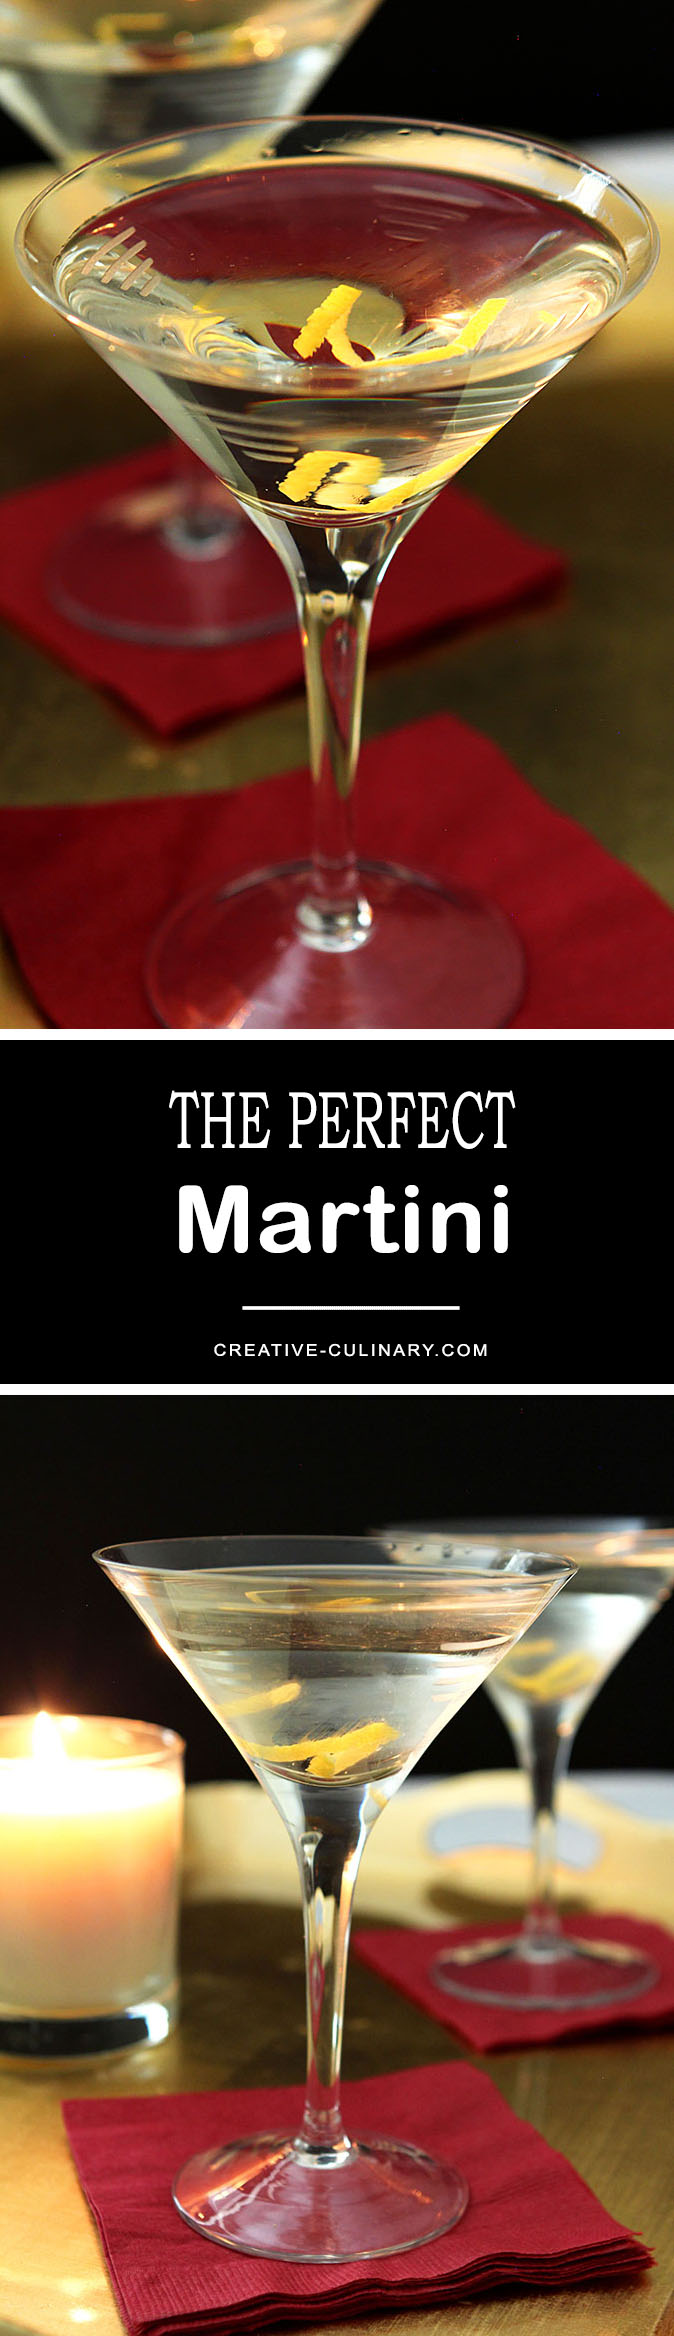 The Perfect Martini is simply one that is perfect for you; starting with good gin and vermouth can make all the difference!